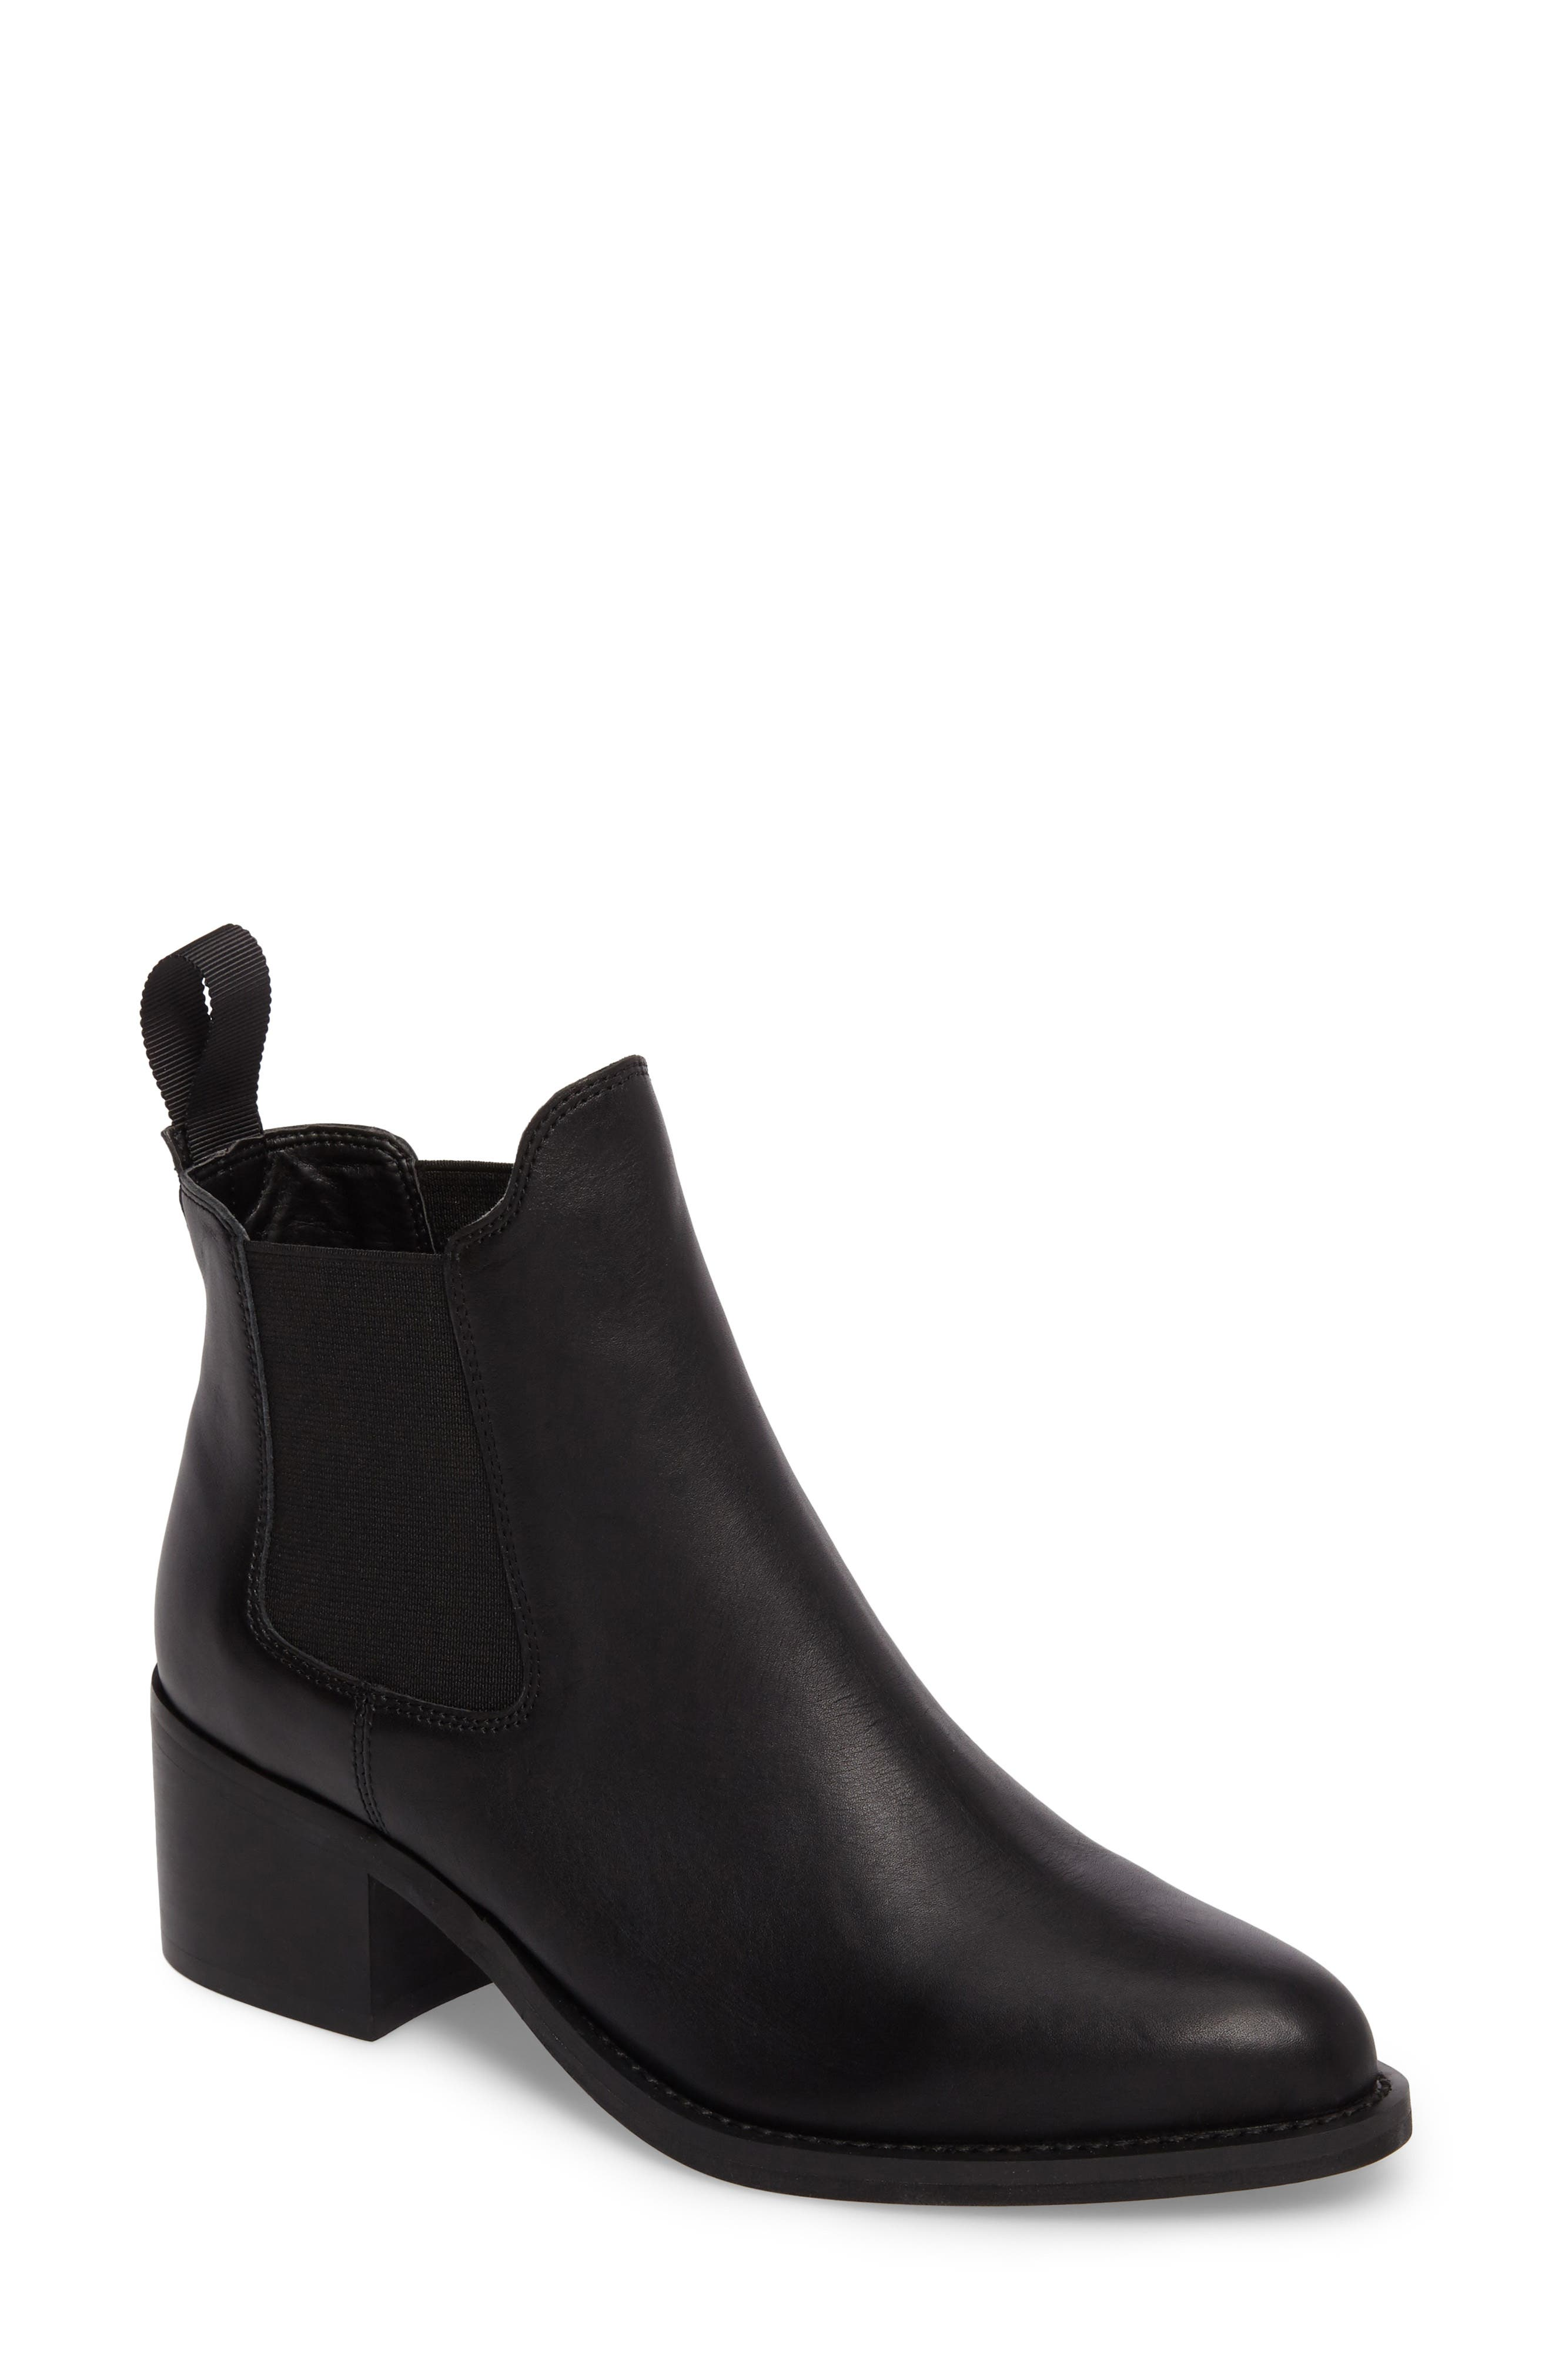 Fraya Ankle Bootie,                             Main thumbnail 1, color,                             BLACK LEATHER